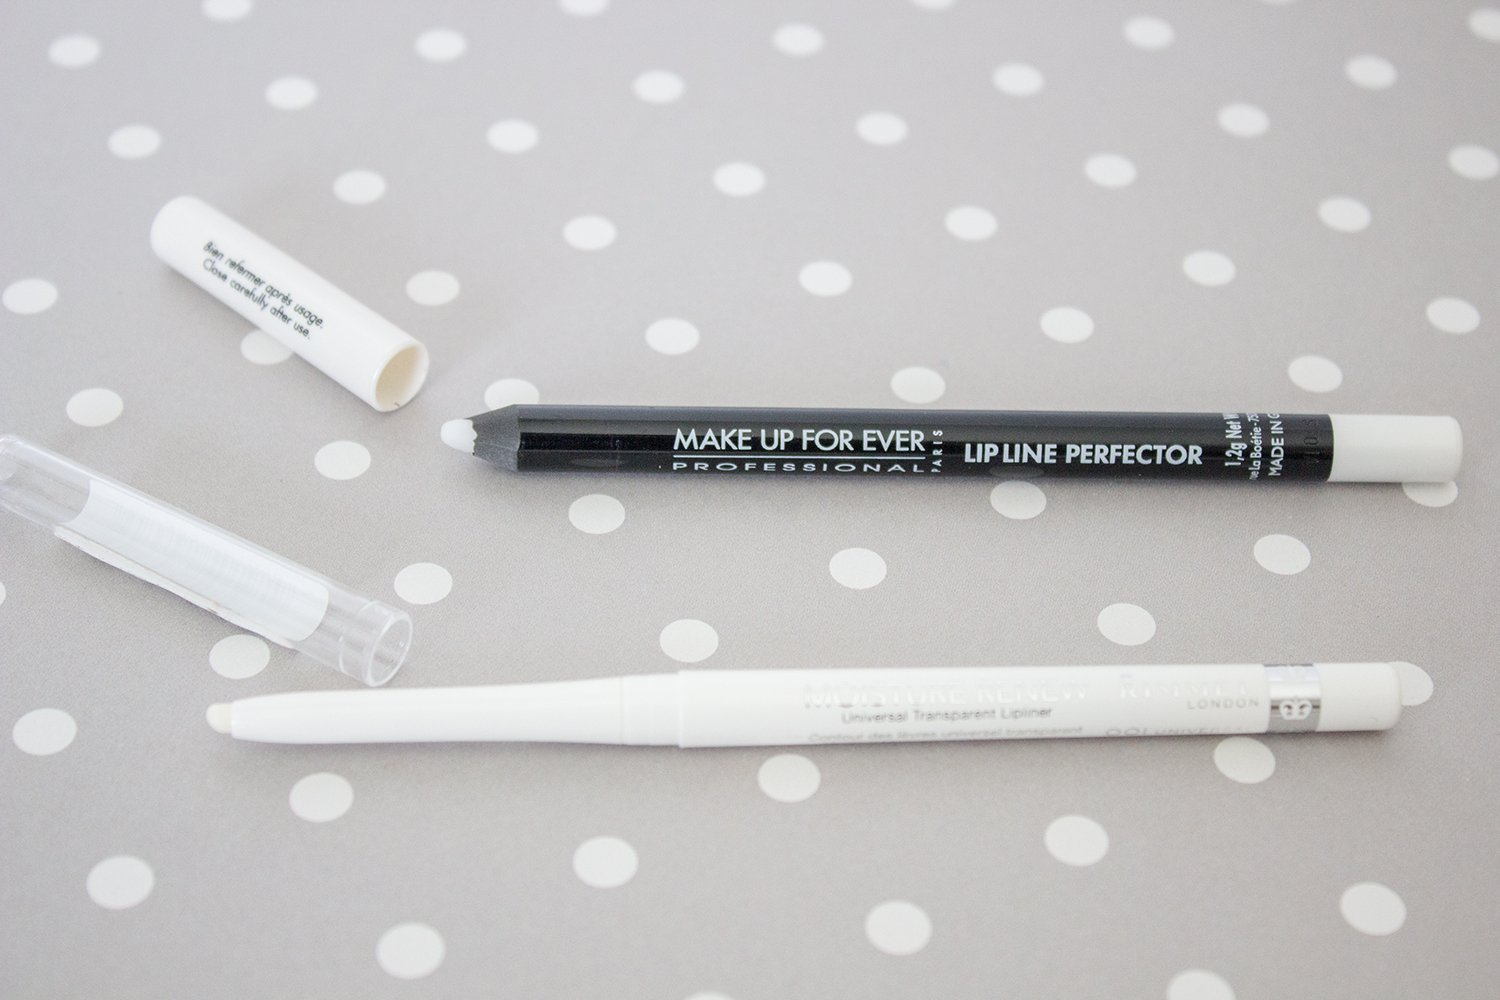 Makeup dupes: Make Up For Ever Lip Line Perfector vs. Rimmel Moisture Renew Transparent Lip Liner